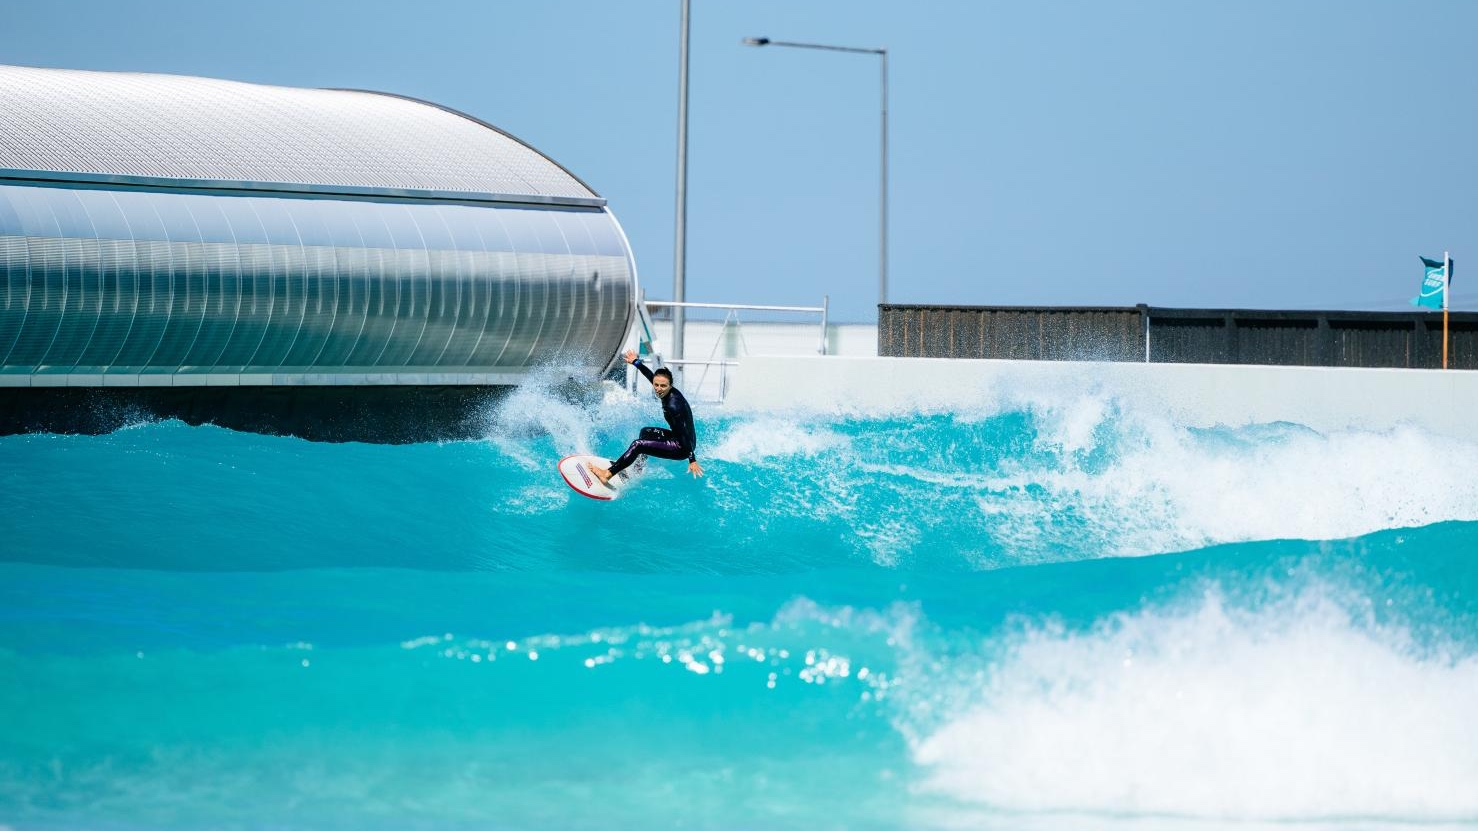 surfing at urbnsurf melbourne